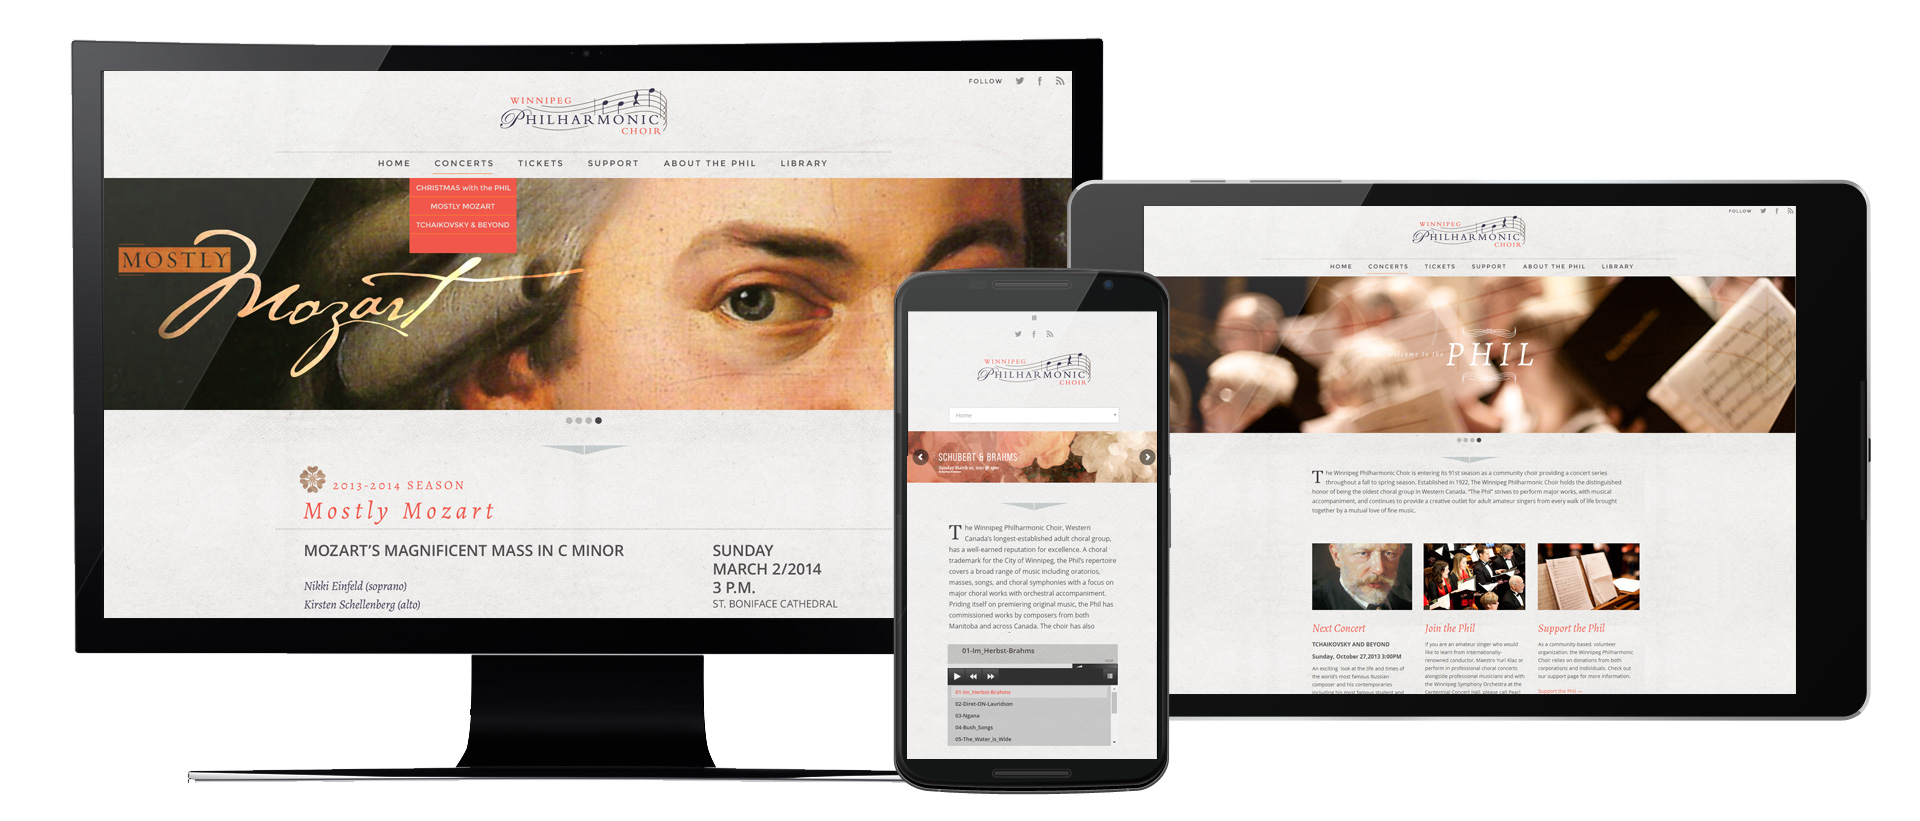 Winnipeg Philharmonic Choir Website